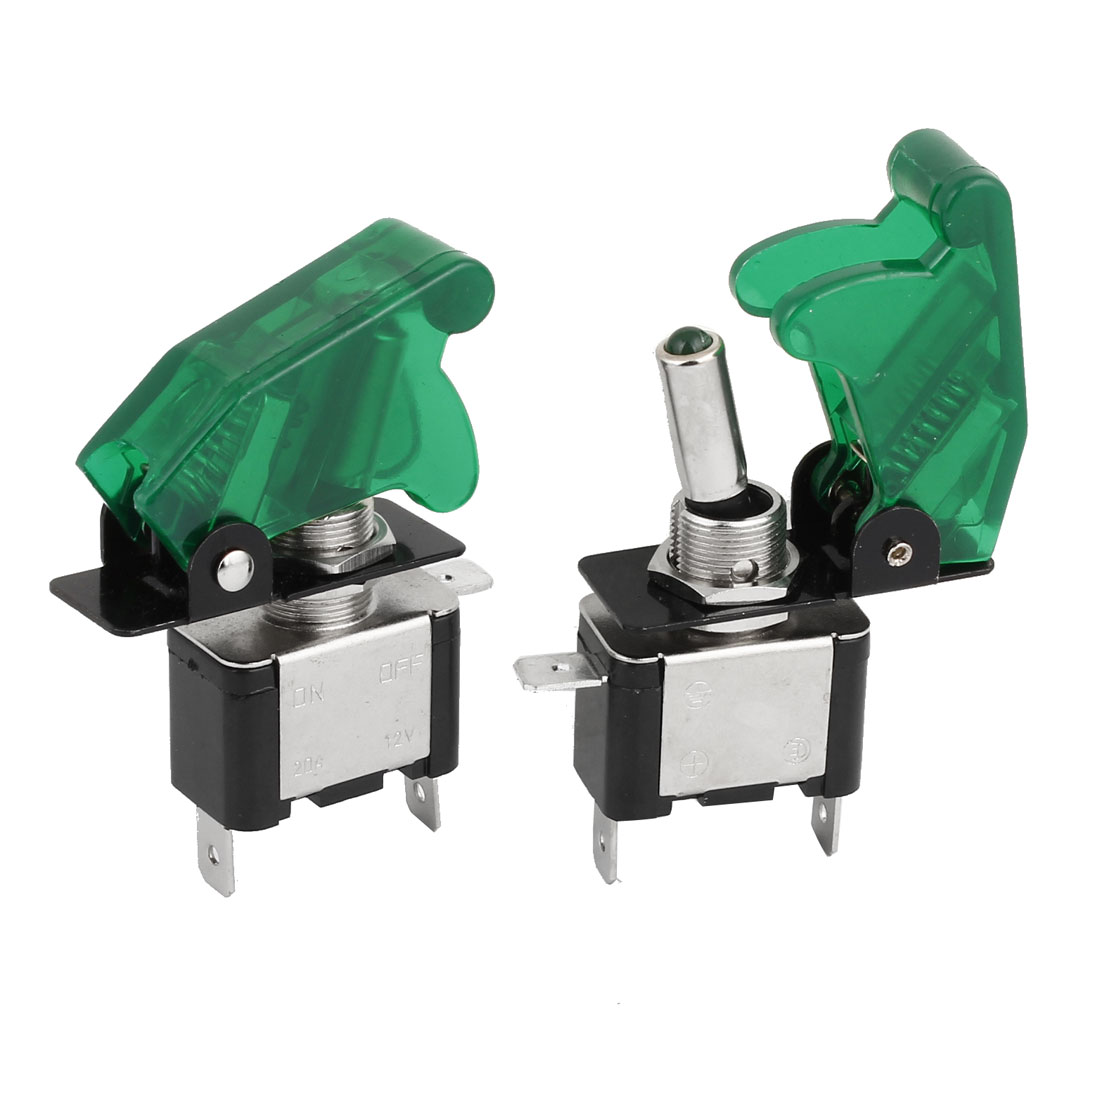 2Pcs Green Lighted Toggle Switch 12V 20A ON OFF Car Truck Boat ATV Airplane